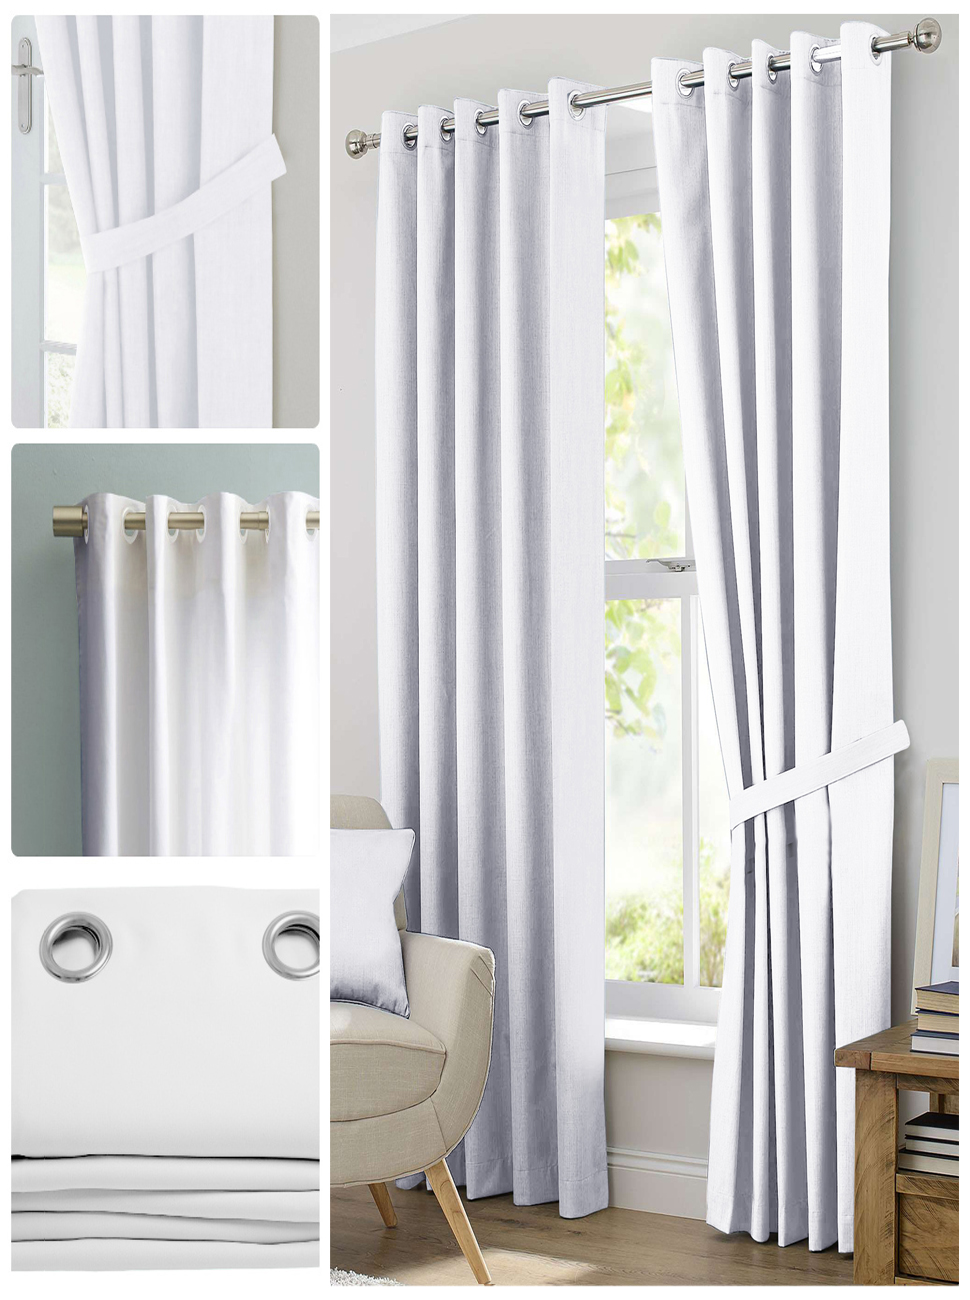 Blackout Room Darkening Curtains Window Panel Drapes Grey Color 2 Panel Set 46